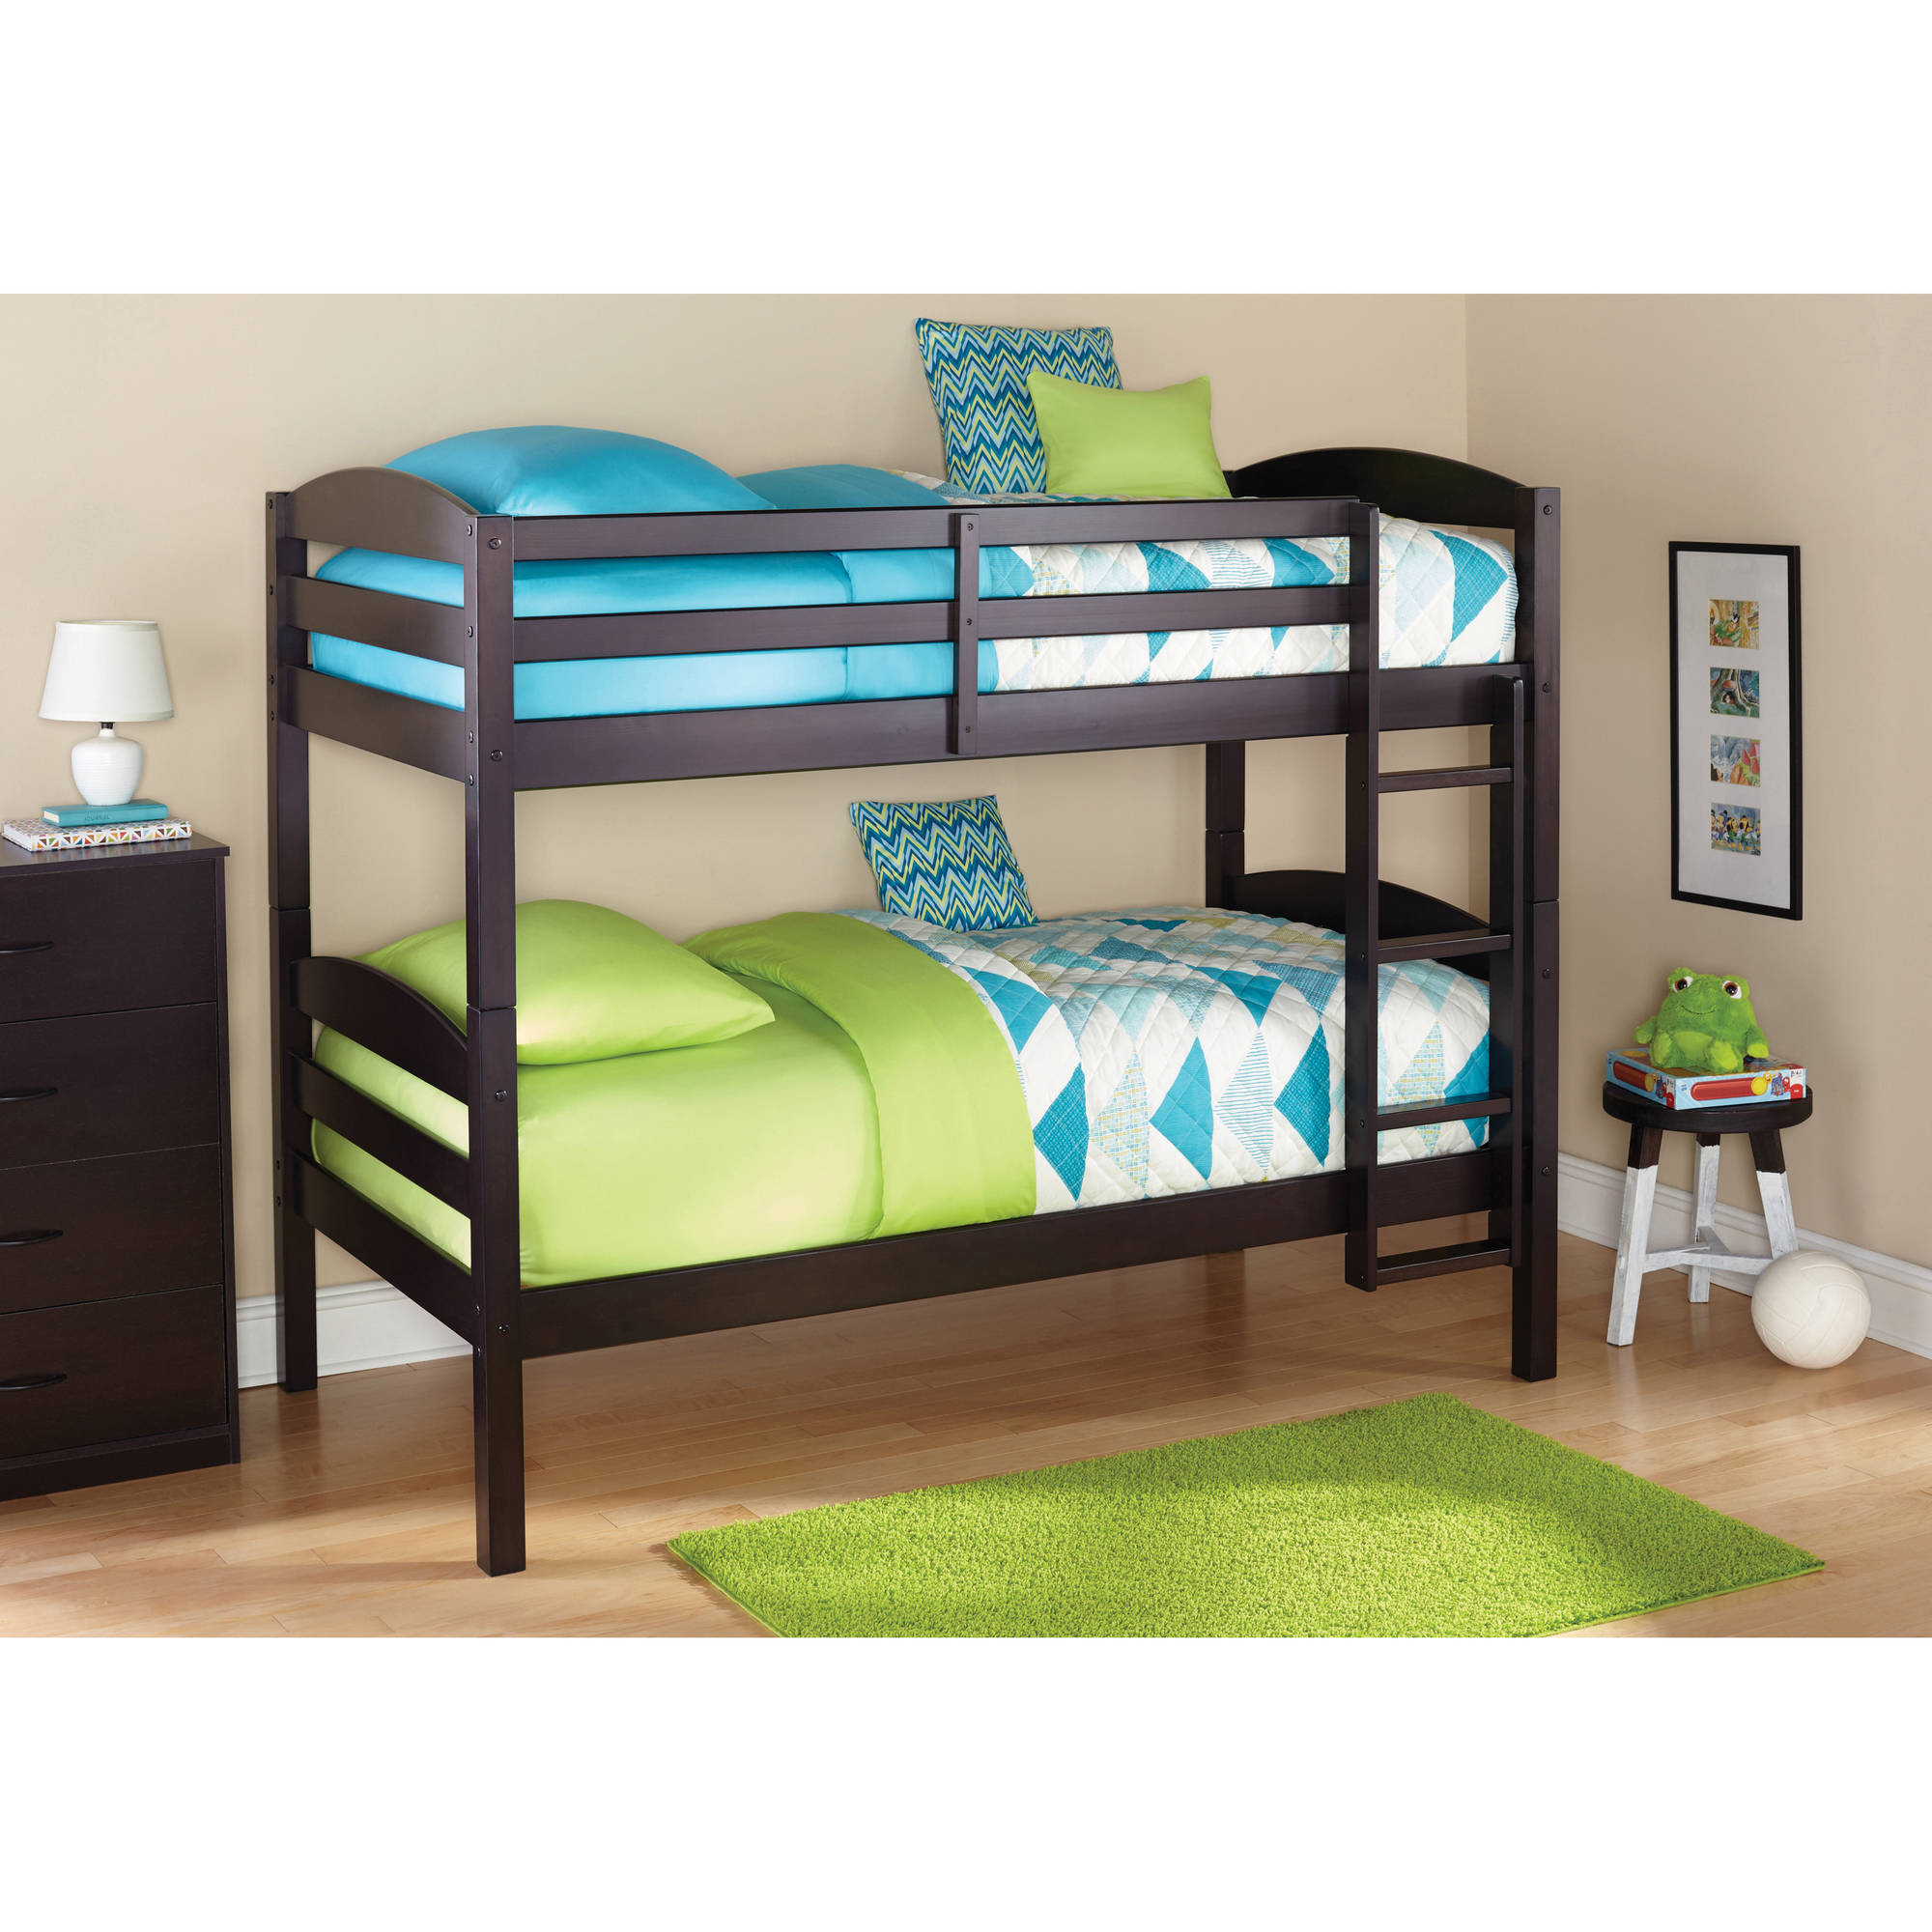 bunk beds twin over twin kids furniture bedroom ladder wood convertible bunkbeds ebay. Black Bedroom Furniture Sets. Home Design Ideas